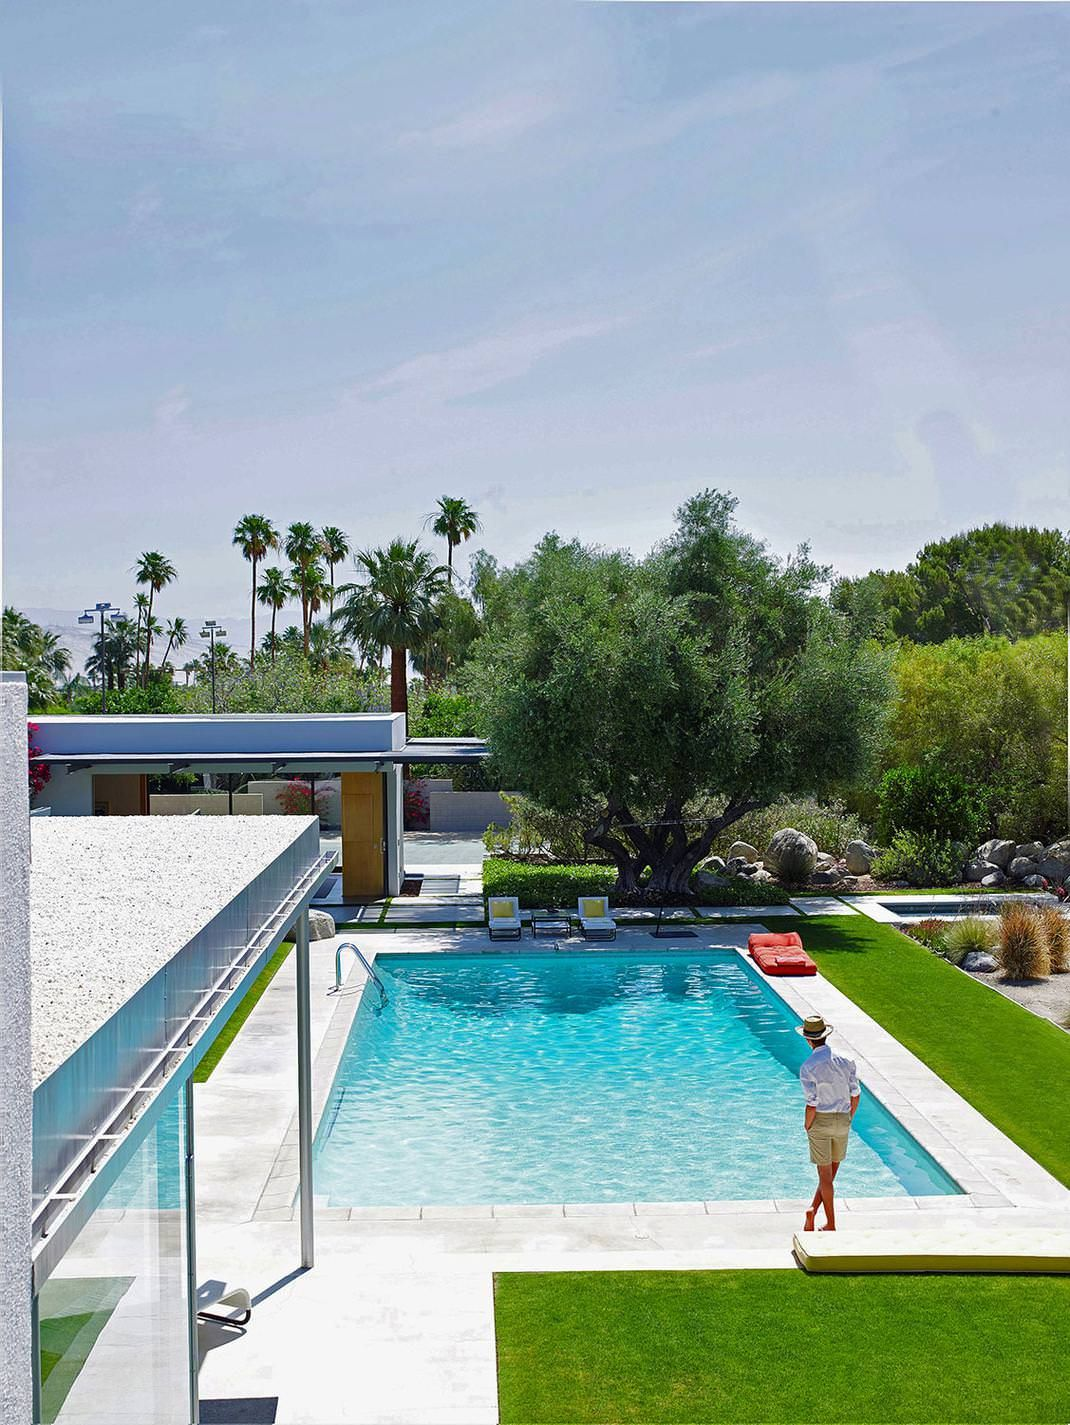 Image result for mid century modern inspiration palm springs house pool houses for Mt hood community college pool open swim